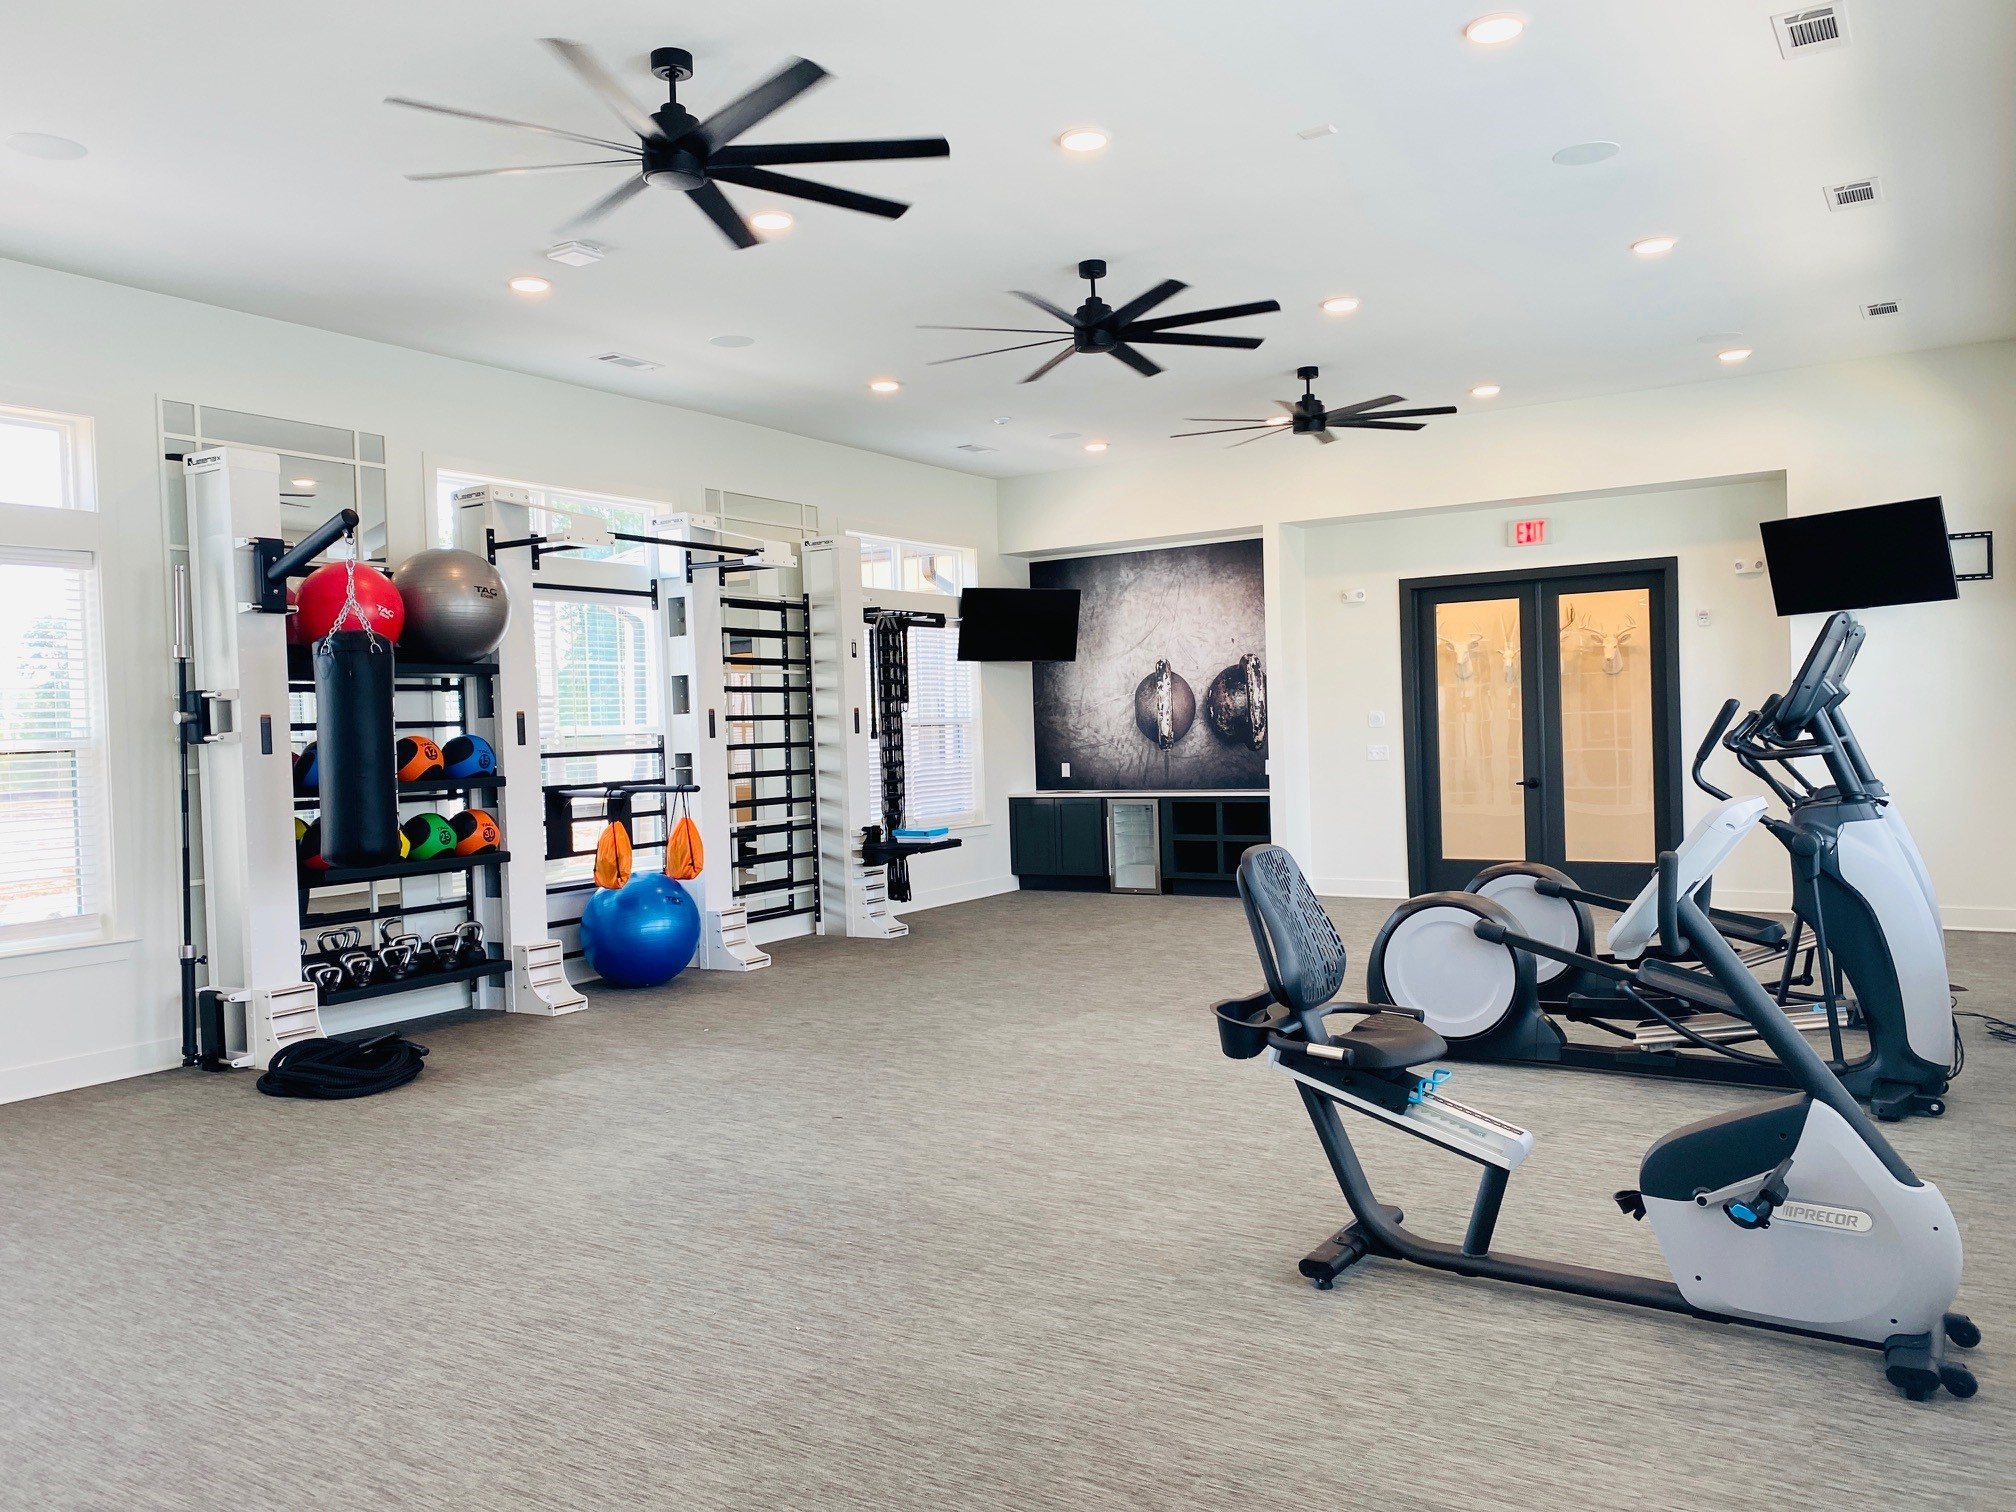 Image of our fitness equipment at The Yard on Mill.